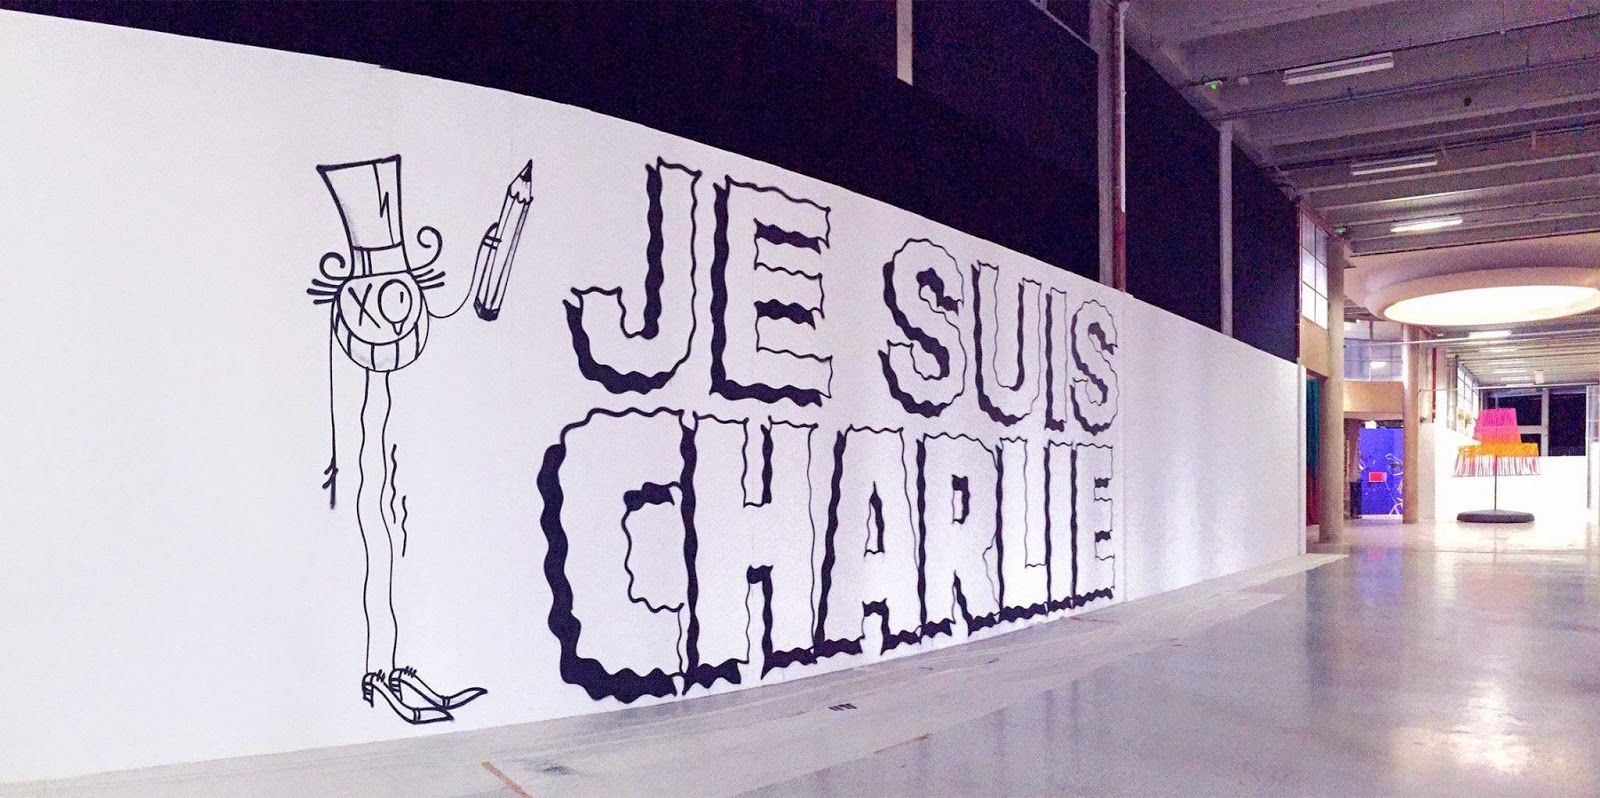 Last week in Paris, after the Charlie Hebdo massacre, a bunch of Parisian artists teamed up to work on several tribute pieces at the Palais De Tokyo in Paris.